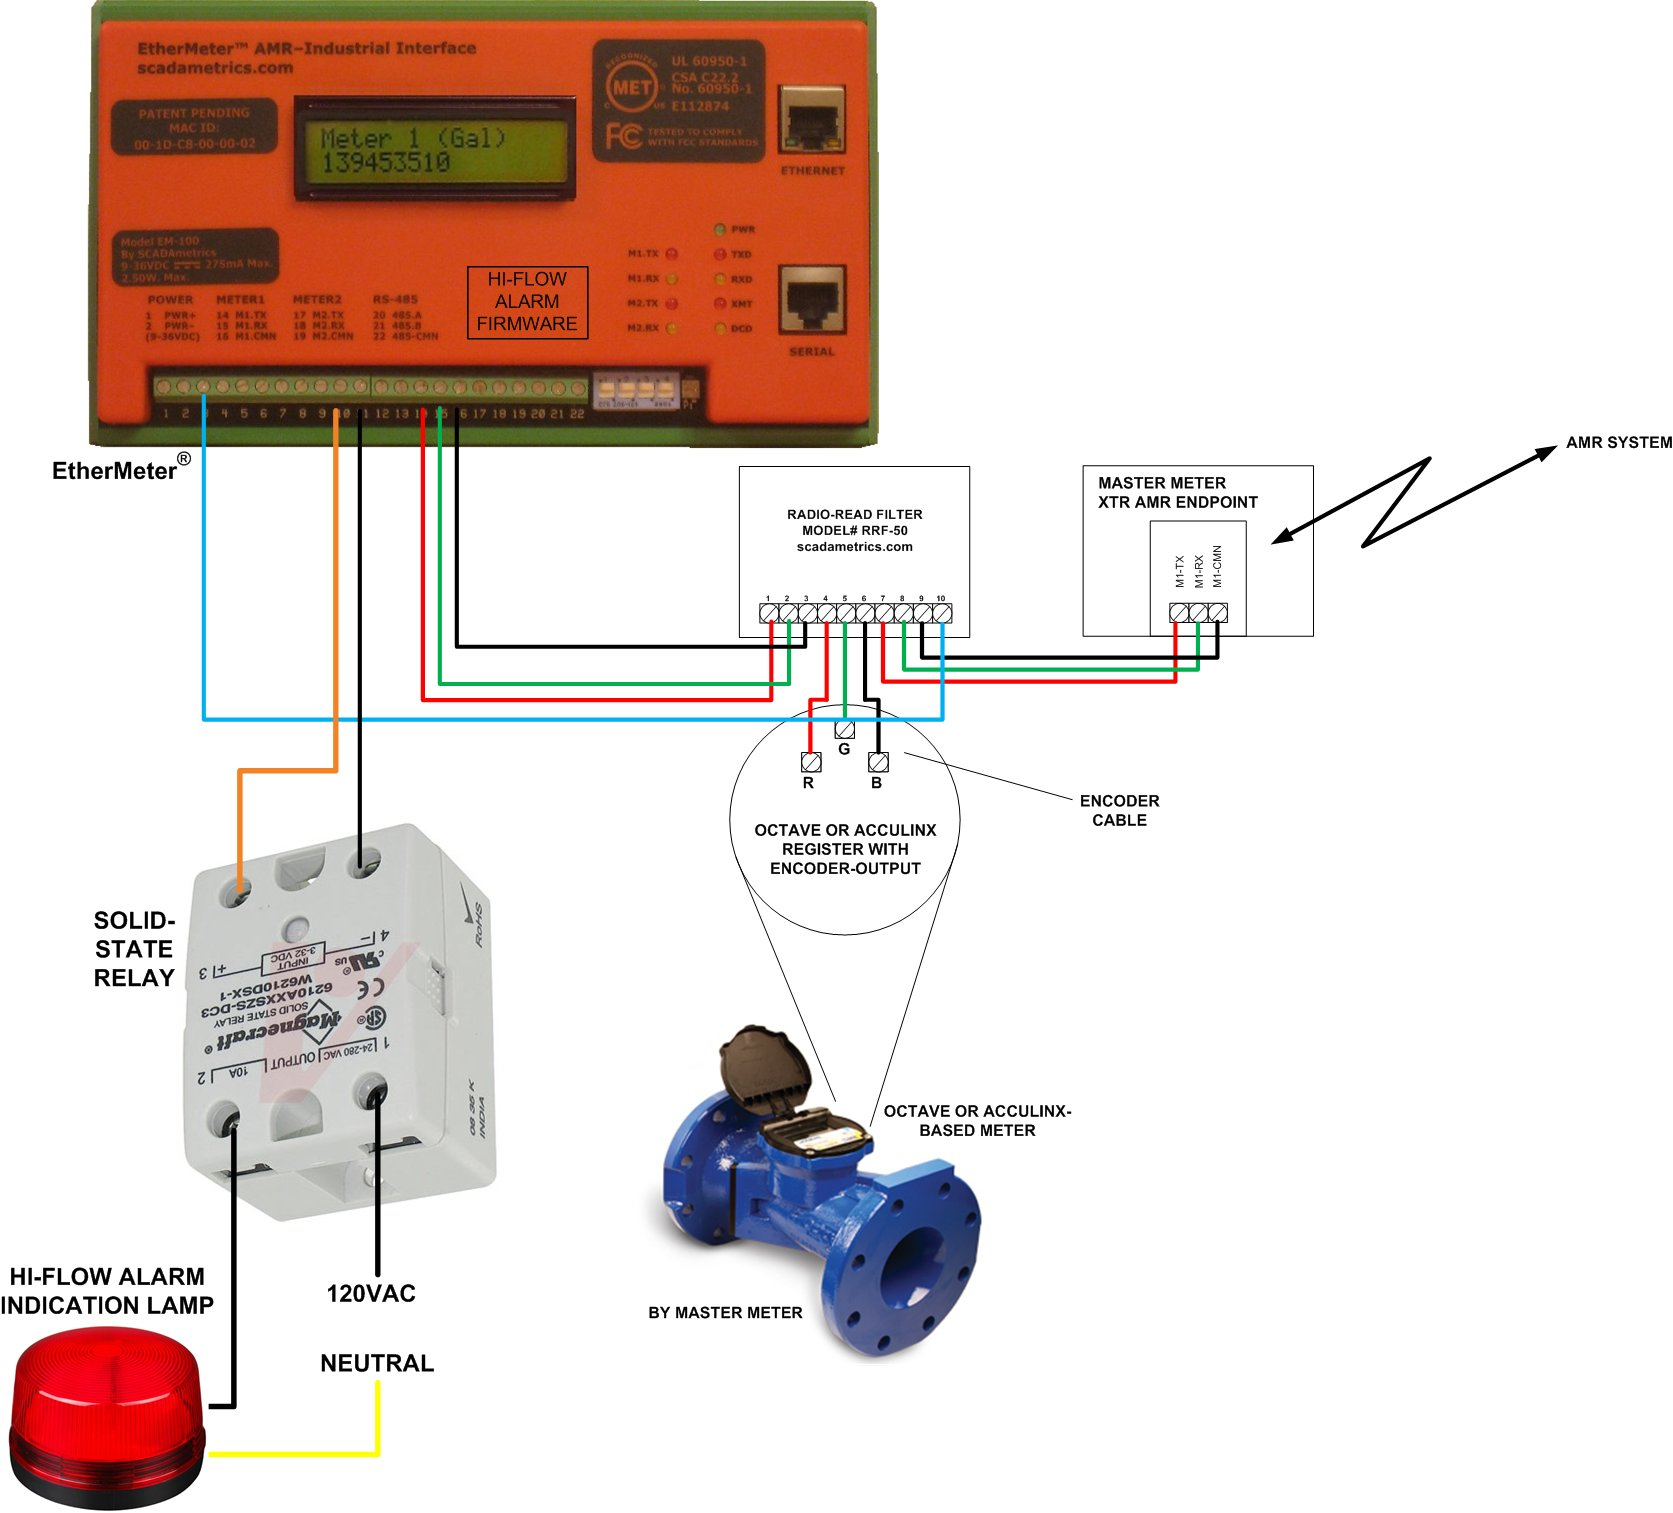 2 wire ultrasonic flow meter wiring diagram for house lighting circuit updated  high alarm annunciation with the ethermeter